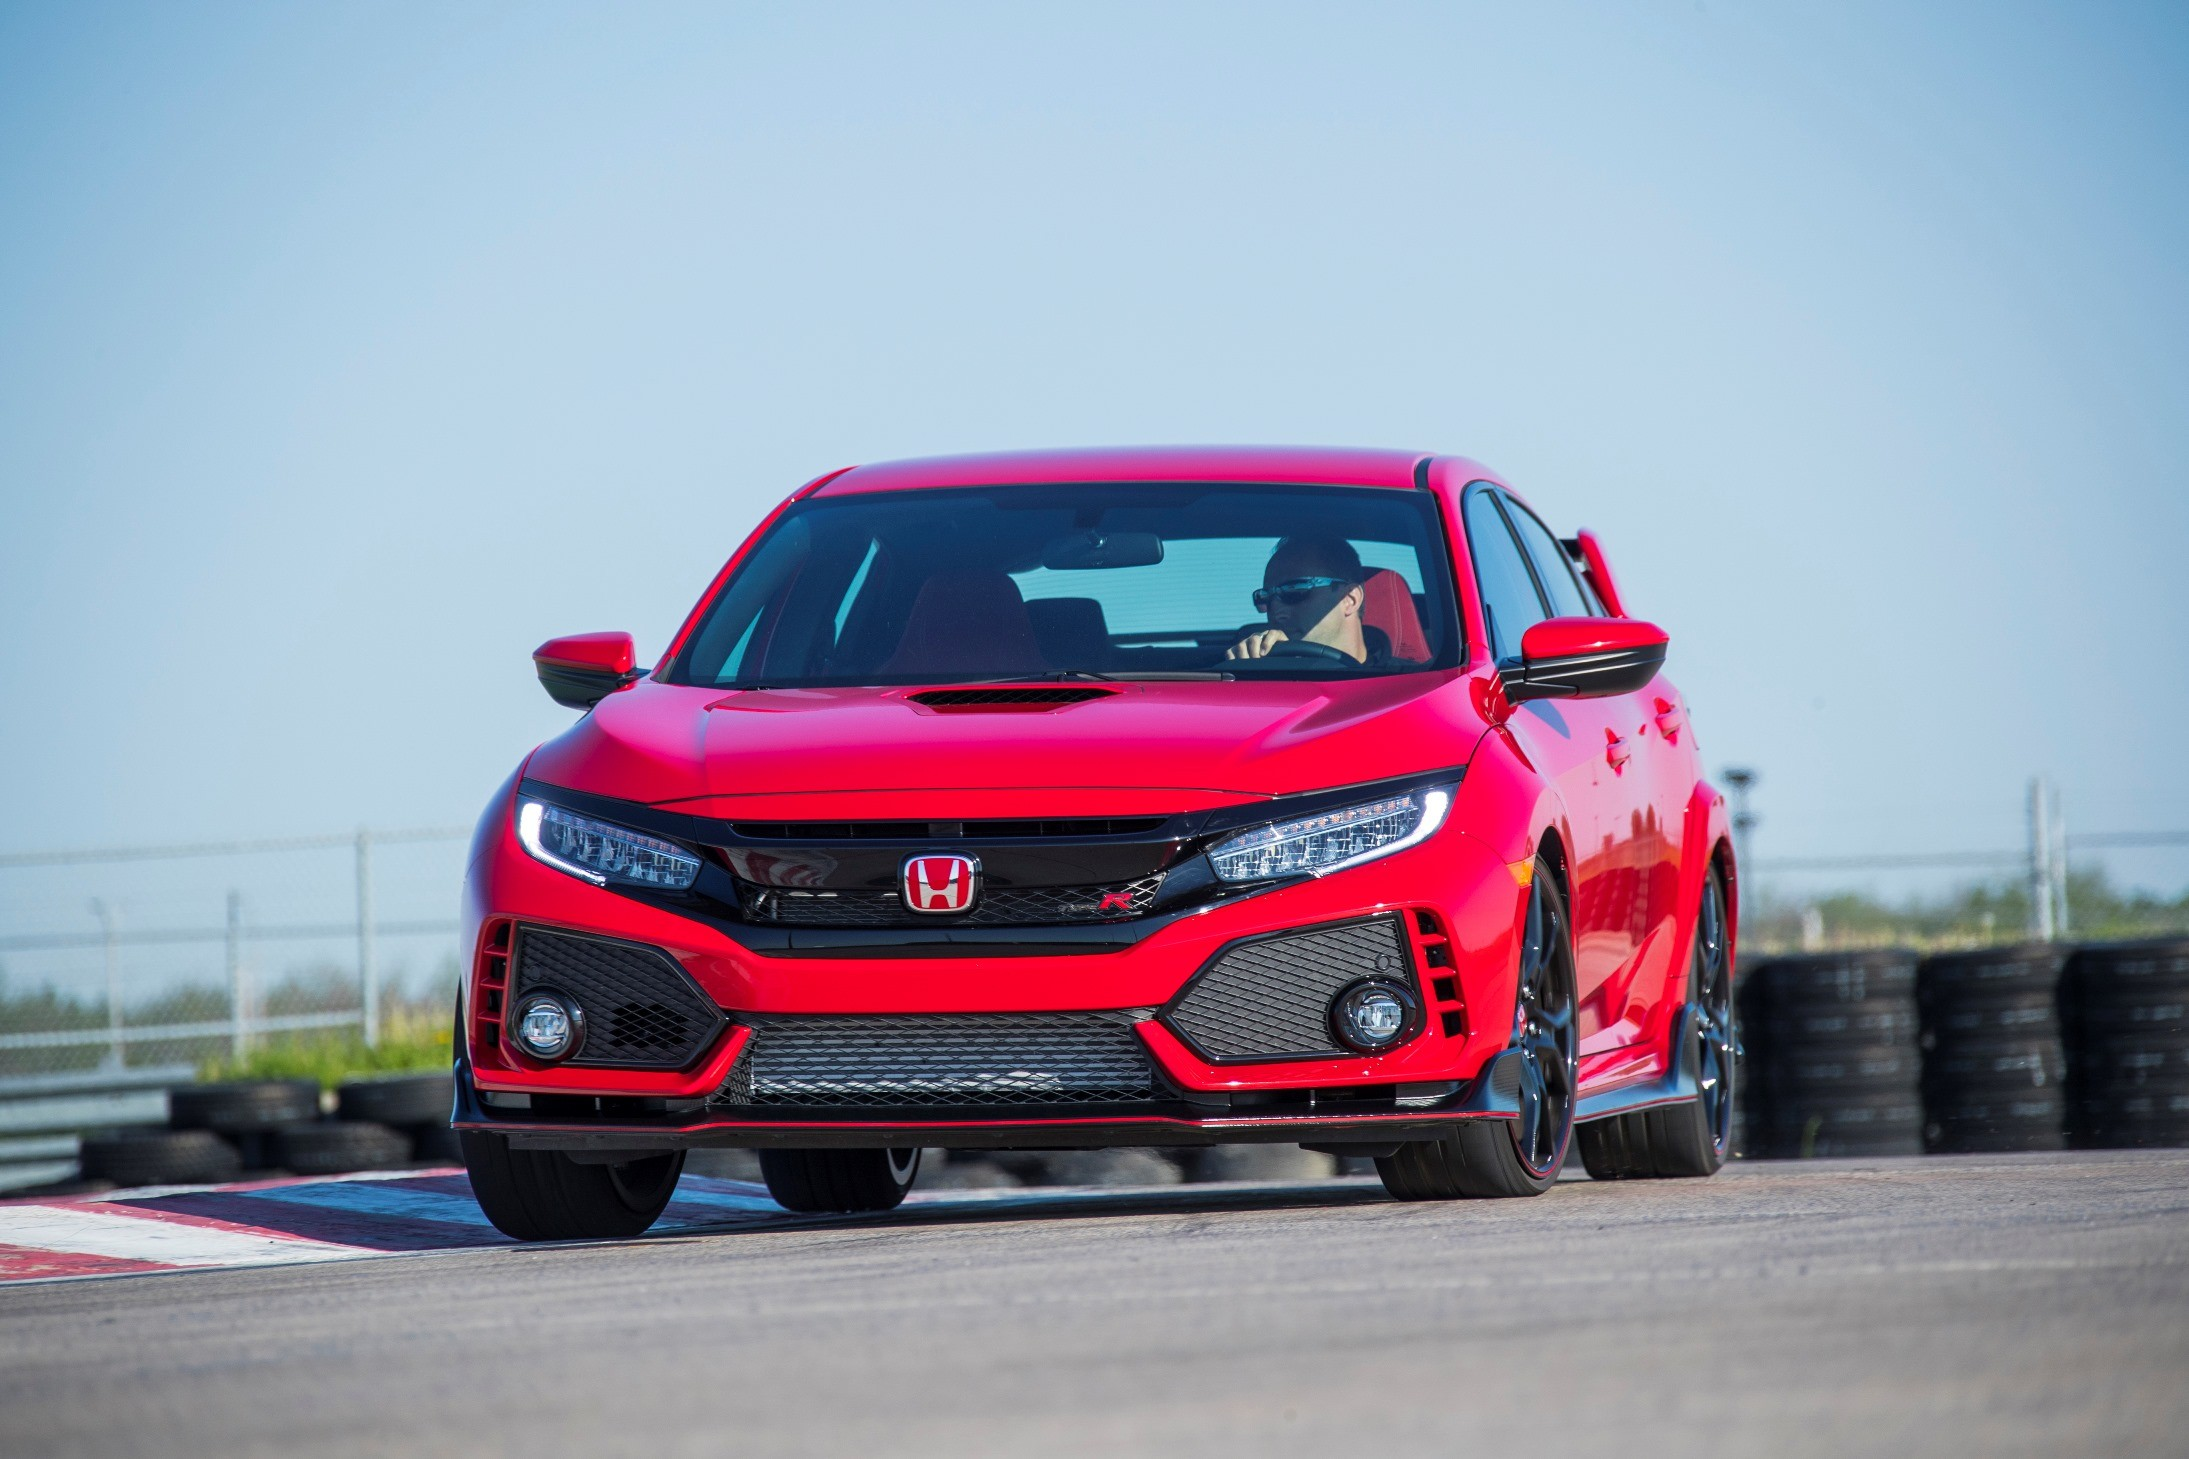 2011 Honda Civic Type R Euro Launched in Japan - autoevolution